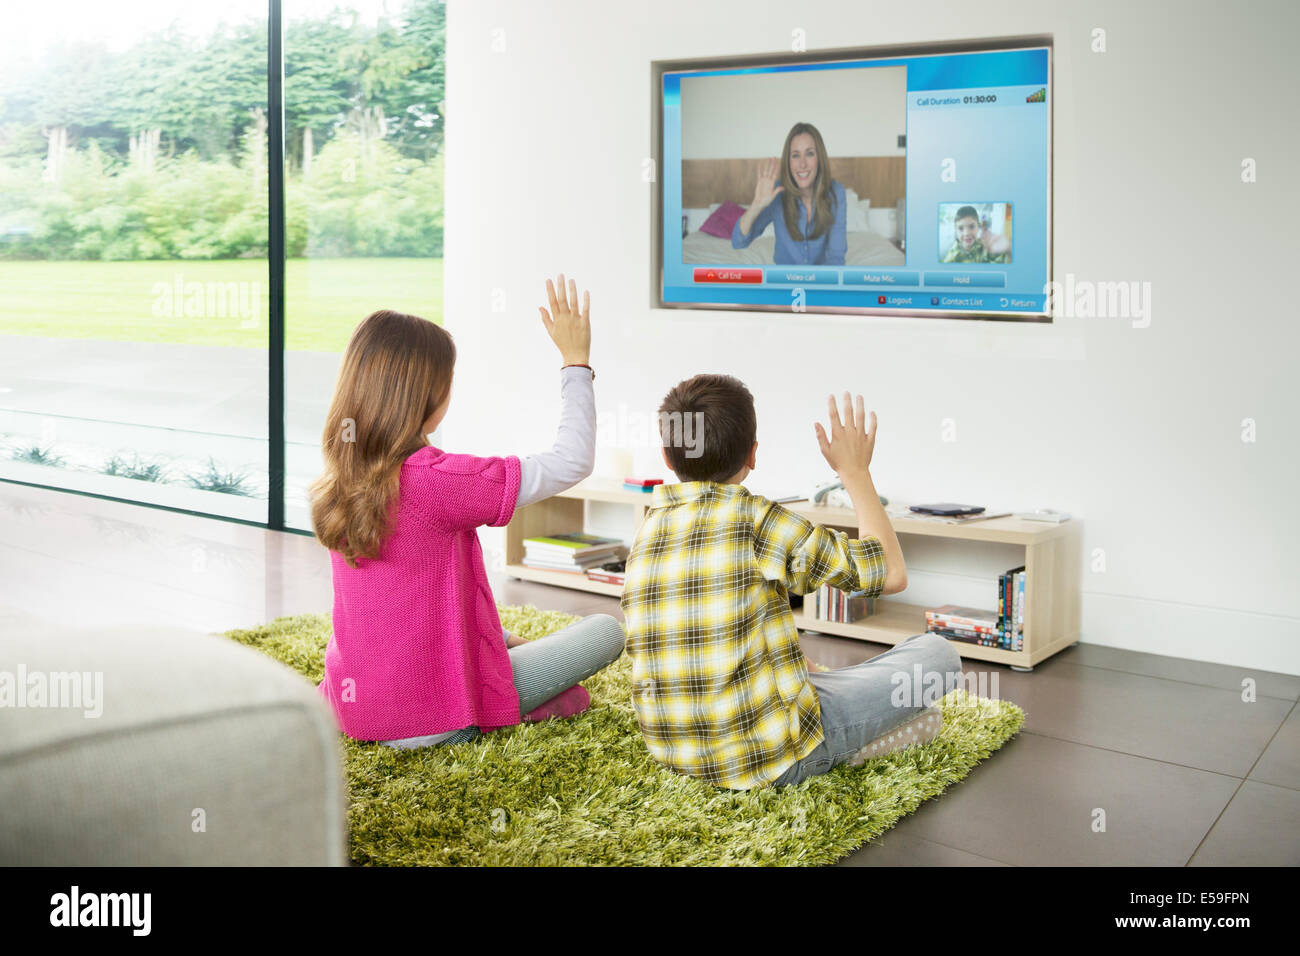 Children video chatting on television in living room - Stock Image